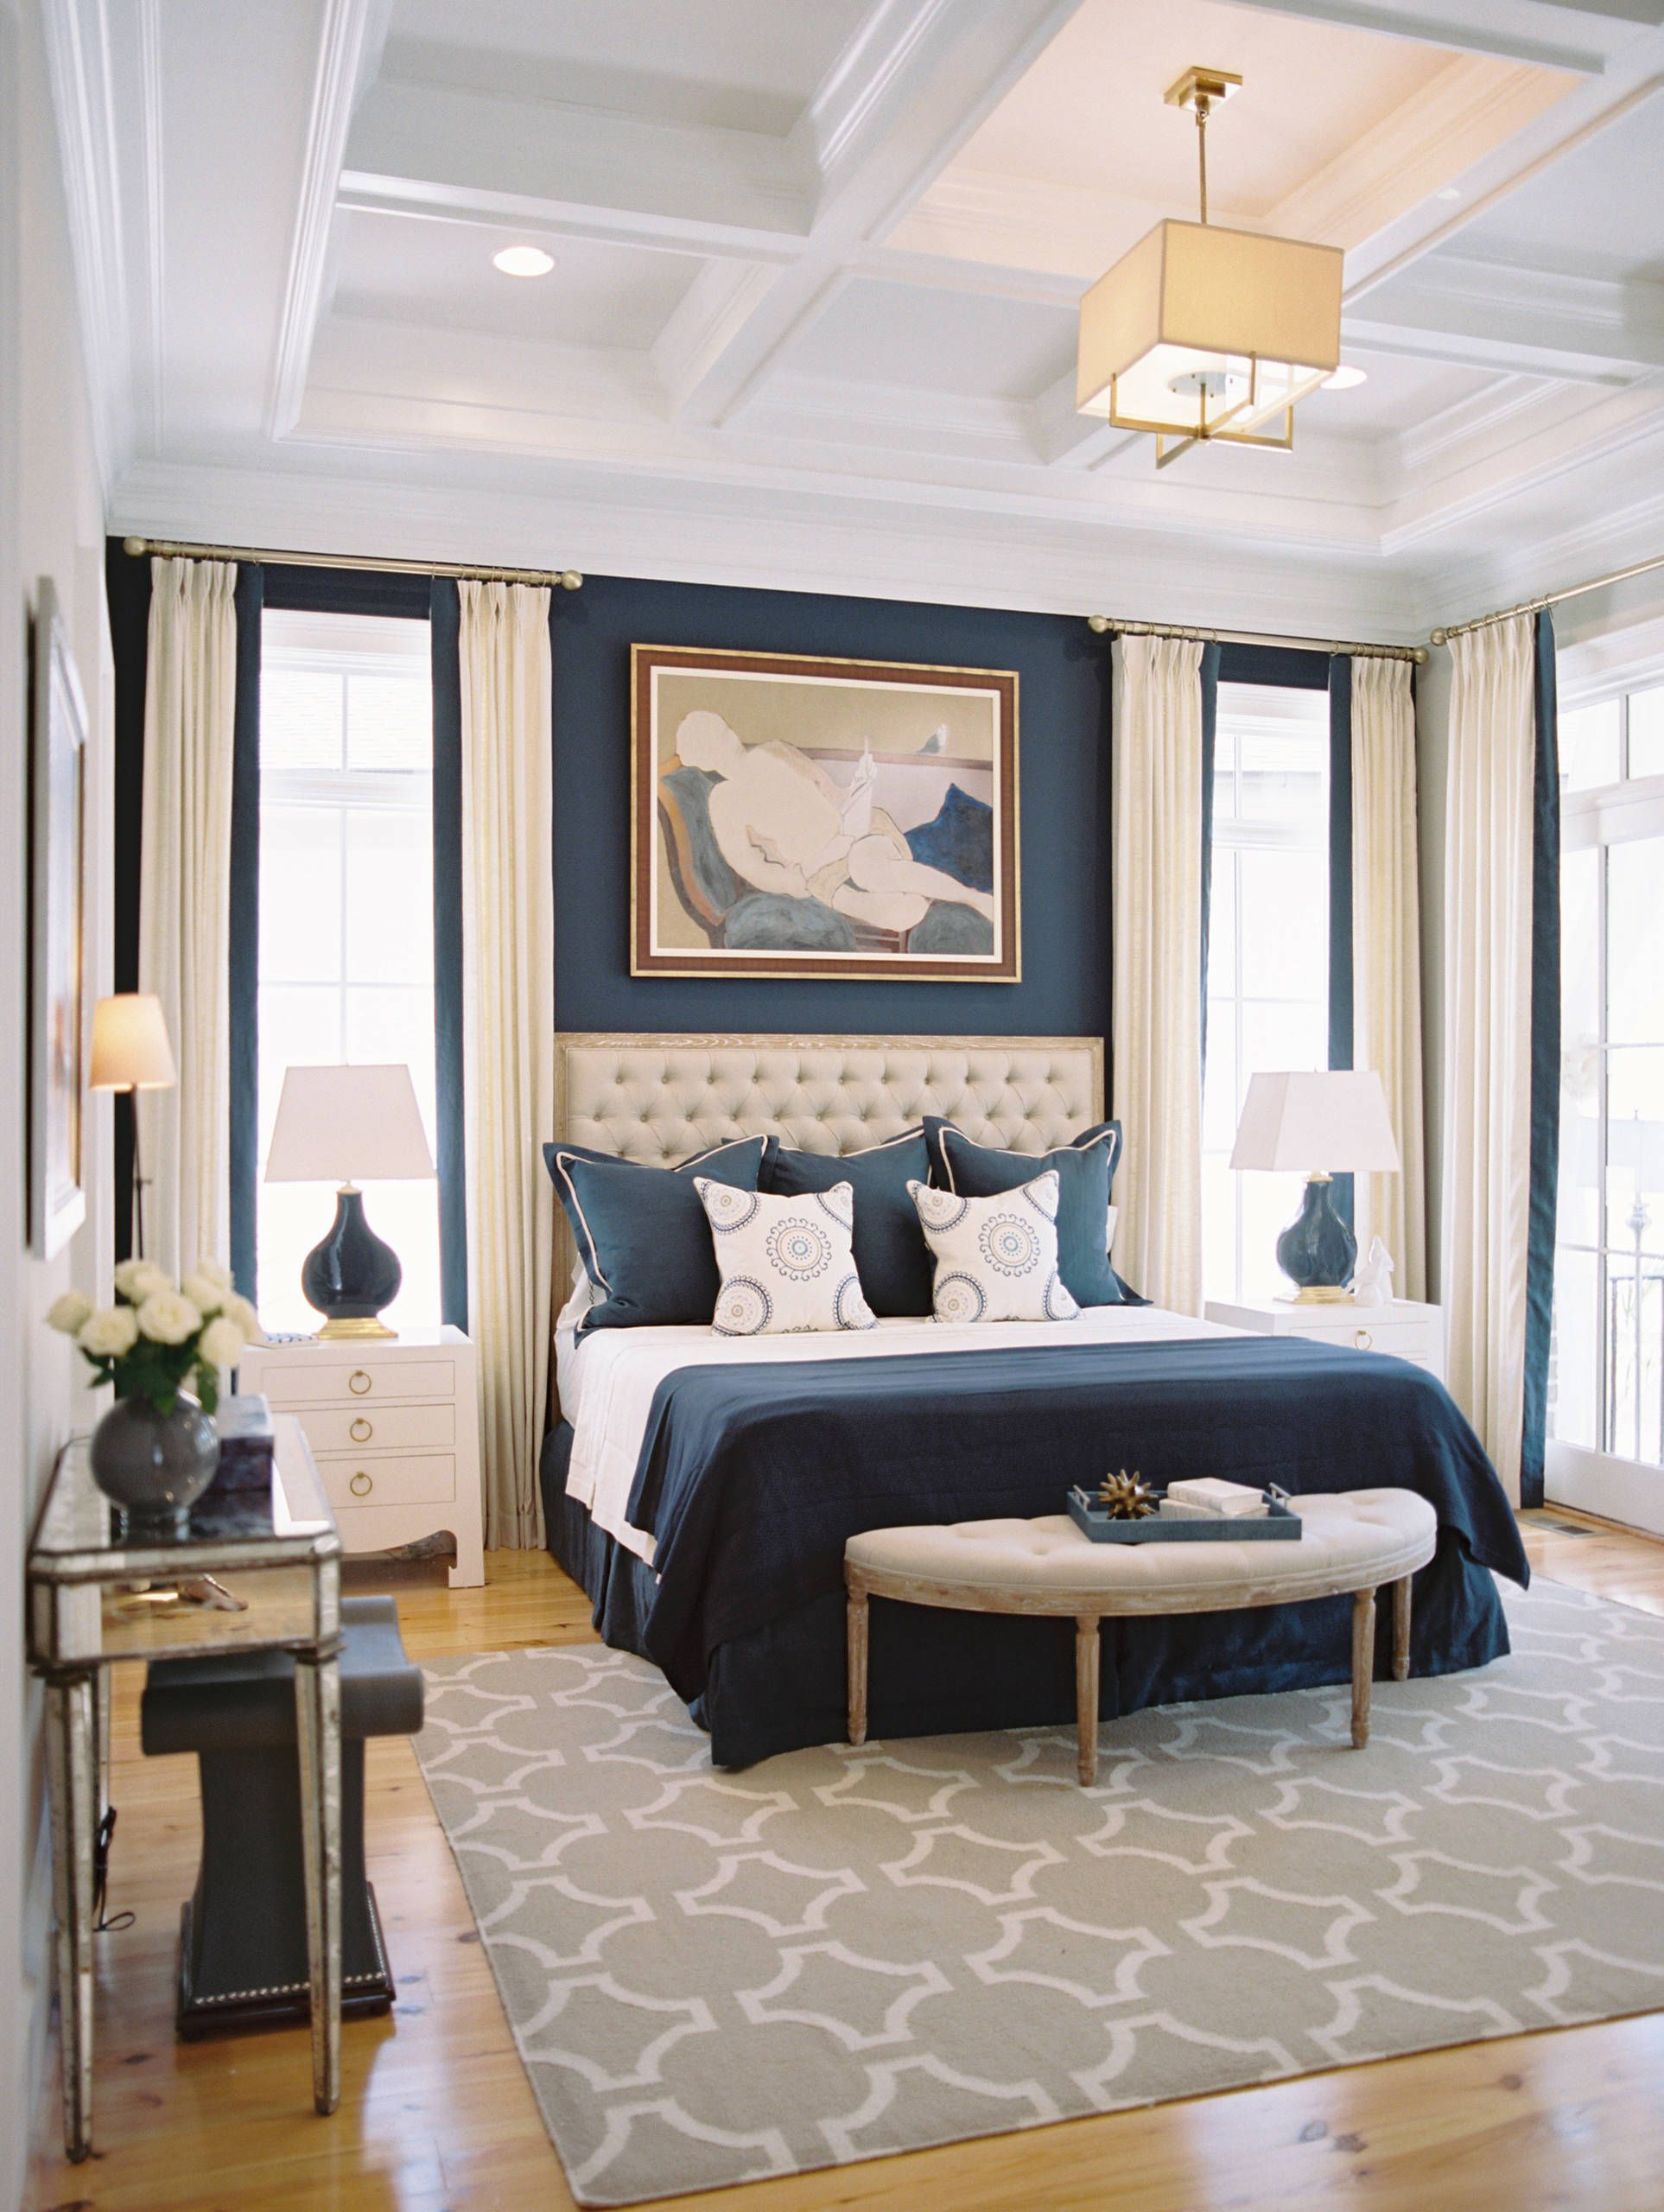 homes nautical of ideas images themed bedroom decorating alternative artistic decor